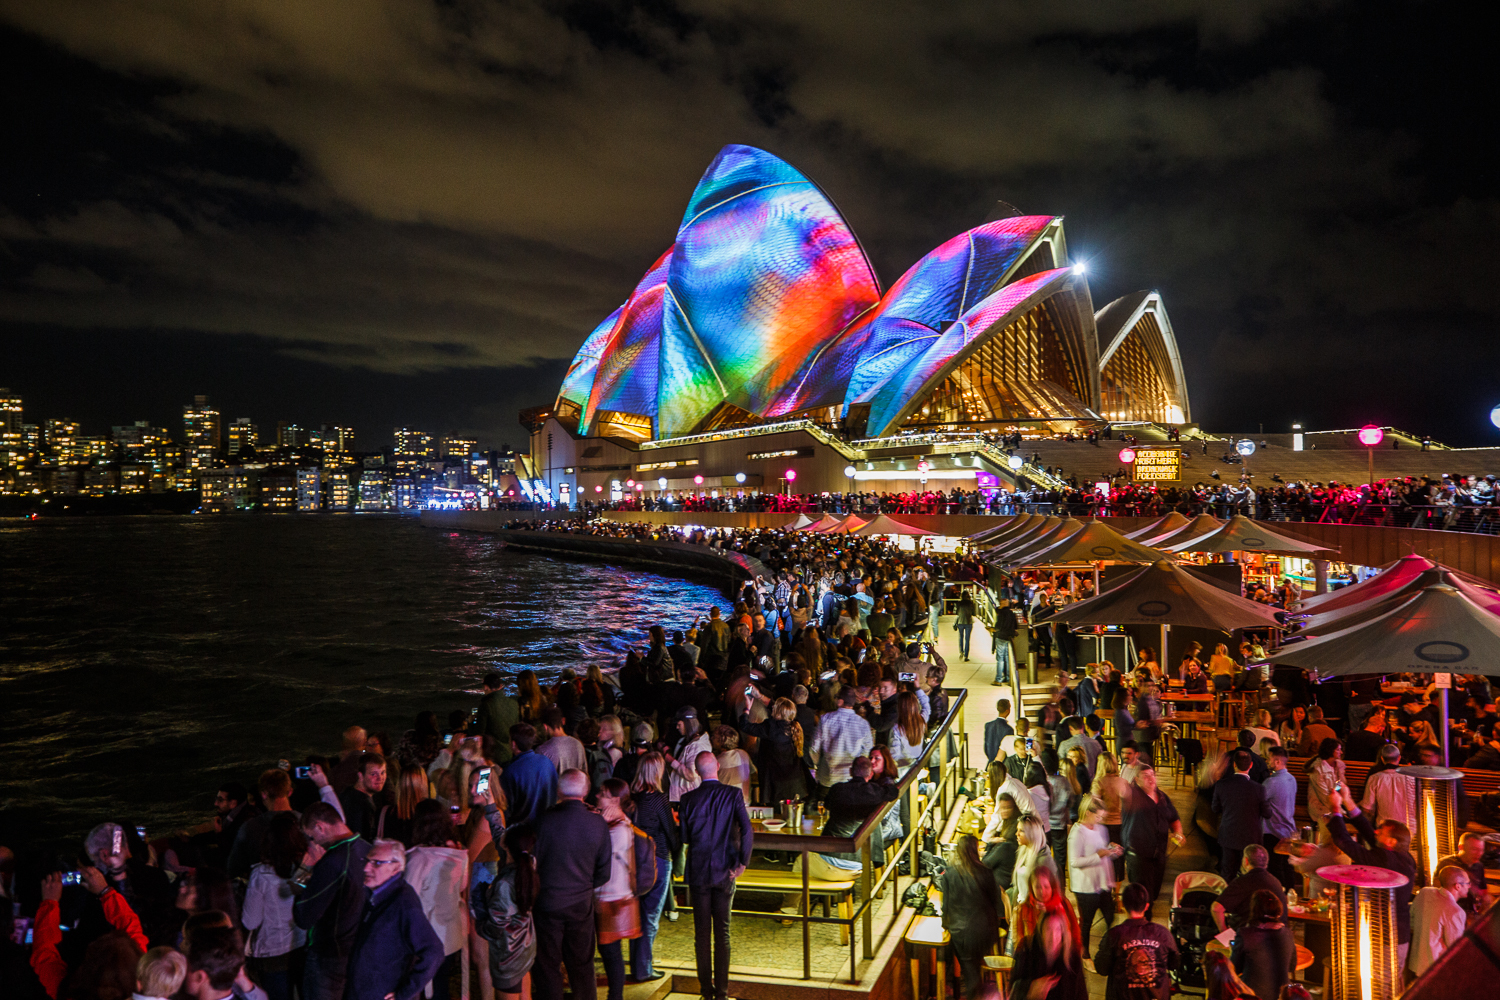 Sydney's Circular Quay comes to life with the world's largest interactive lighting display, Vivid Sydney.